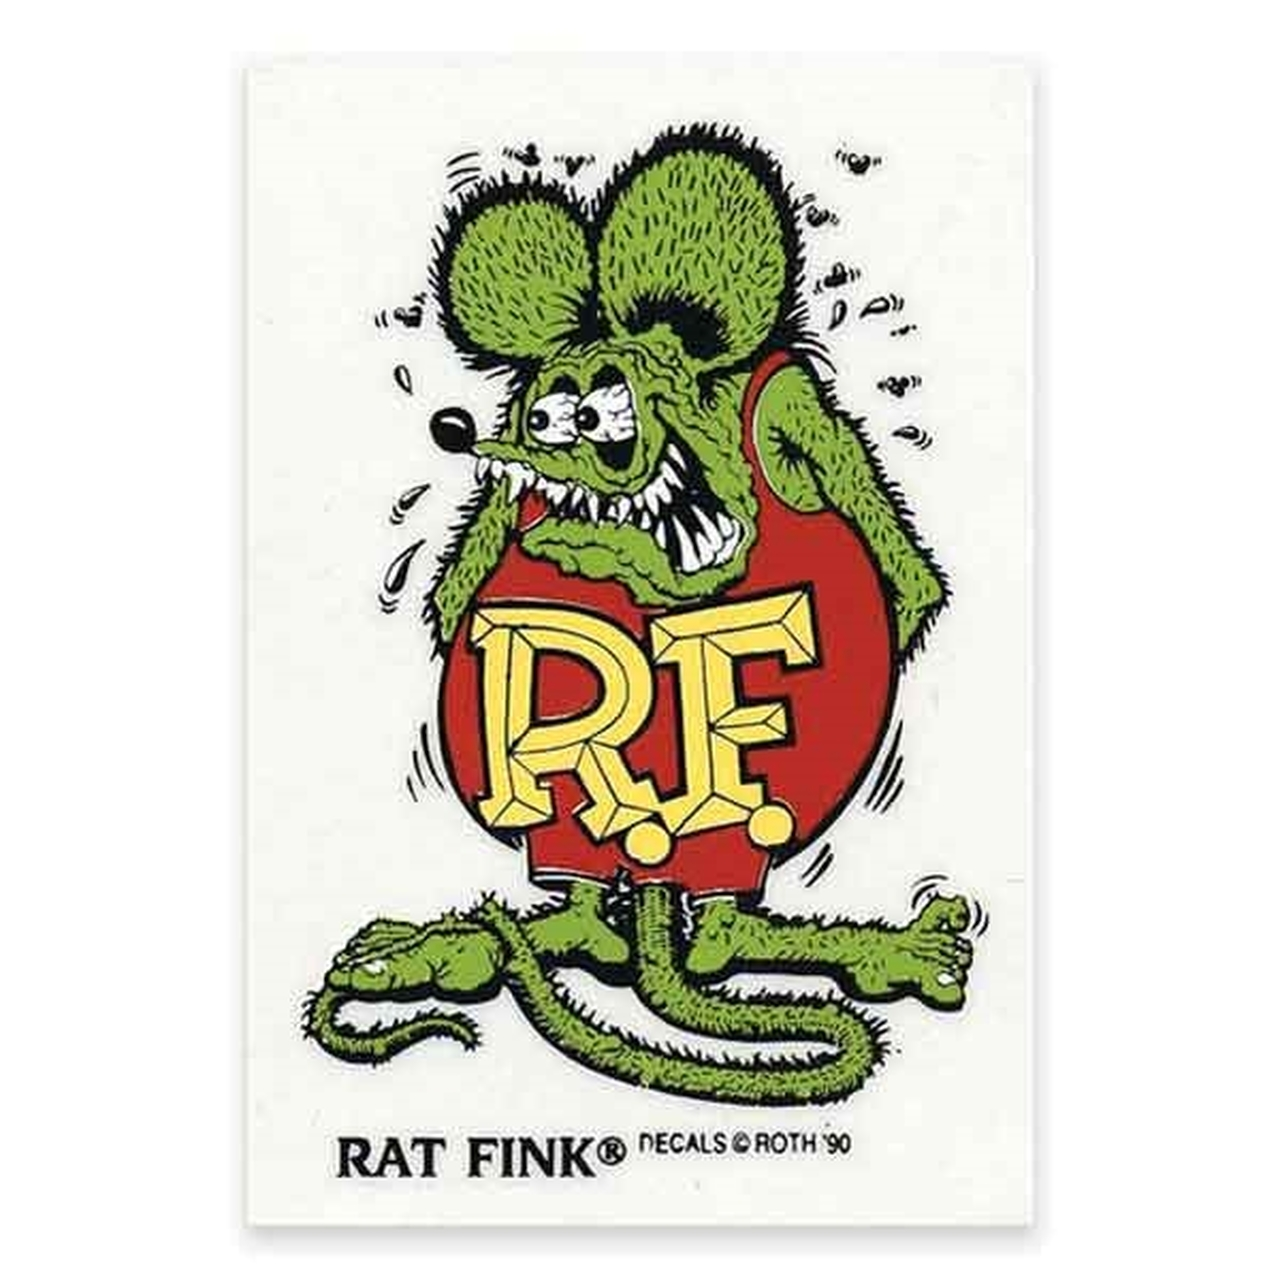 Rat Fink - Mooneyes Large Rat Fink Standing Green Decal - SO-CAL Speed Shop AZ